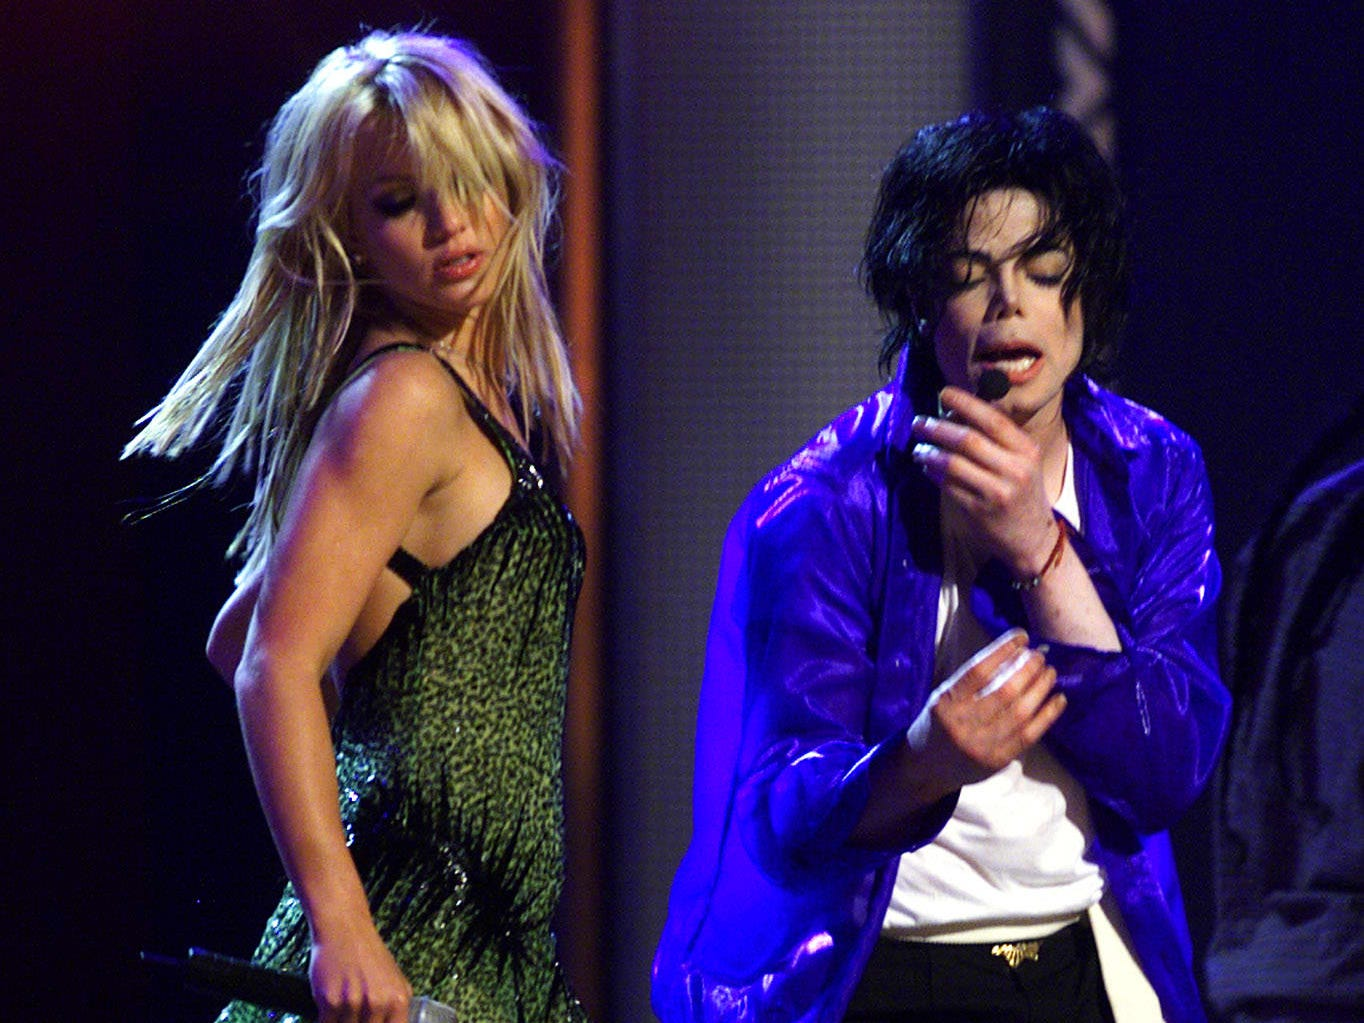 """Michael Jackson (R) performs with Britney Spears at Madison Square Garden in New York 07 September, 2001. It was the first of two performances in New York as part of his """"30th Anniversary Celebration, the Solo Years."""" AFP PHOTO ORG XMIT: JFK30"""